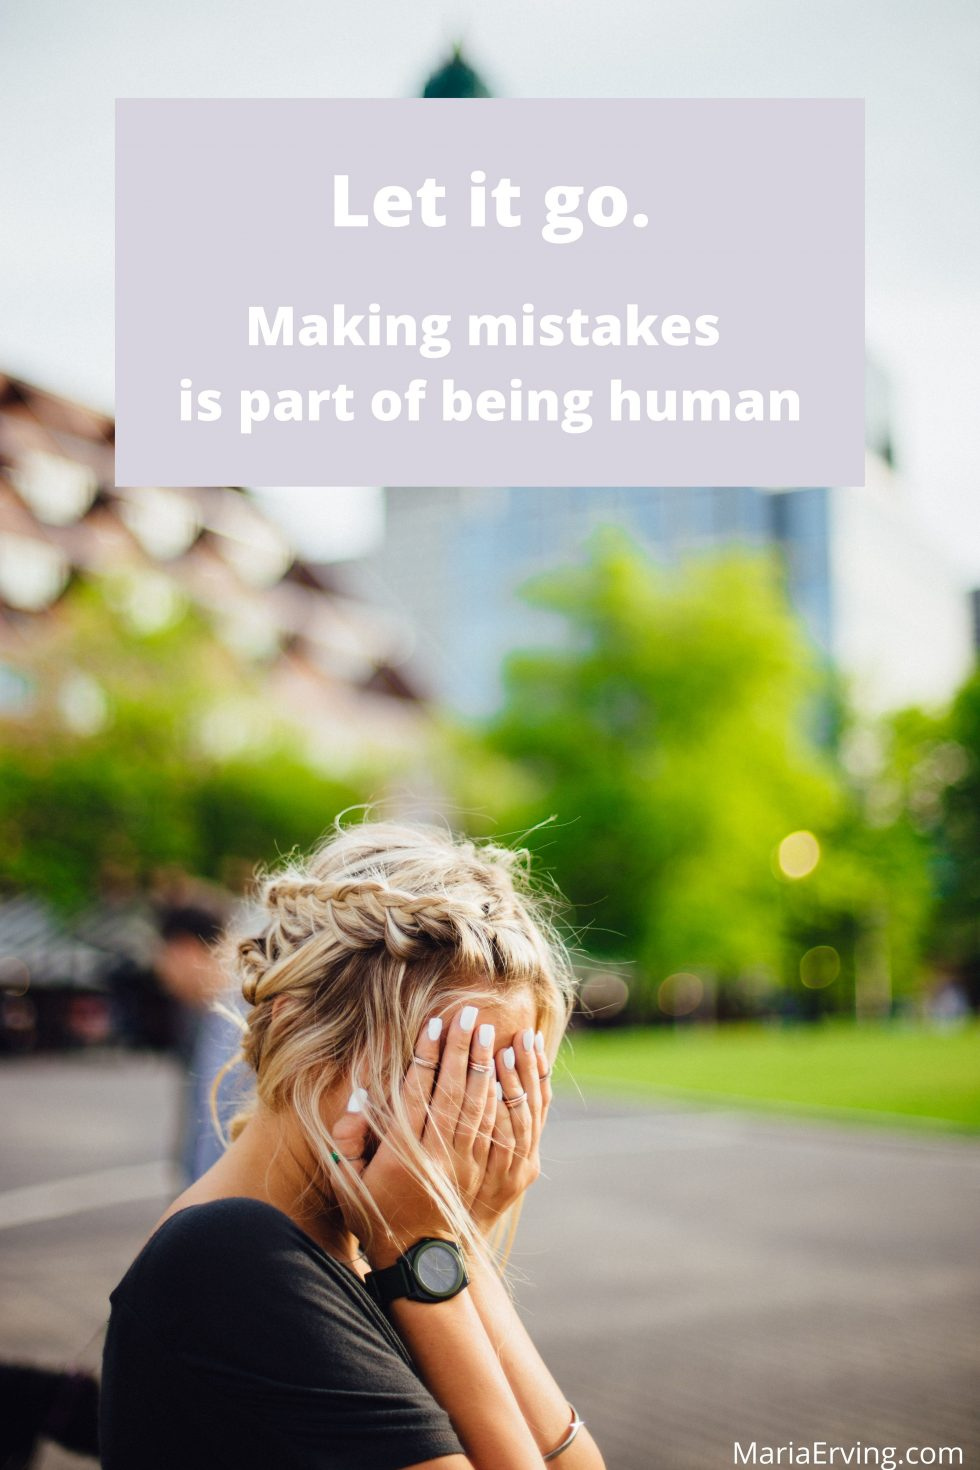 Making mistakes is part of being human, let go of regrets